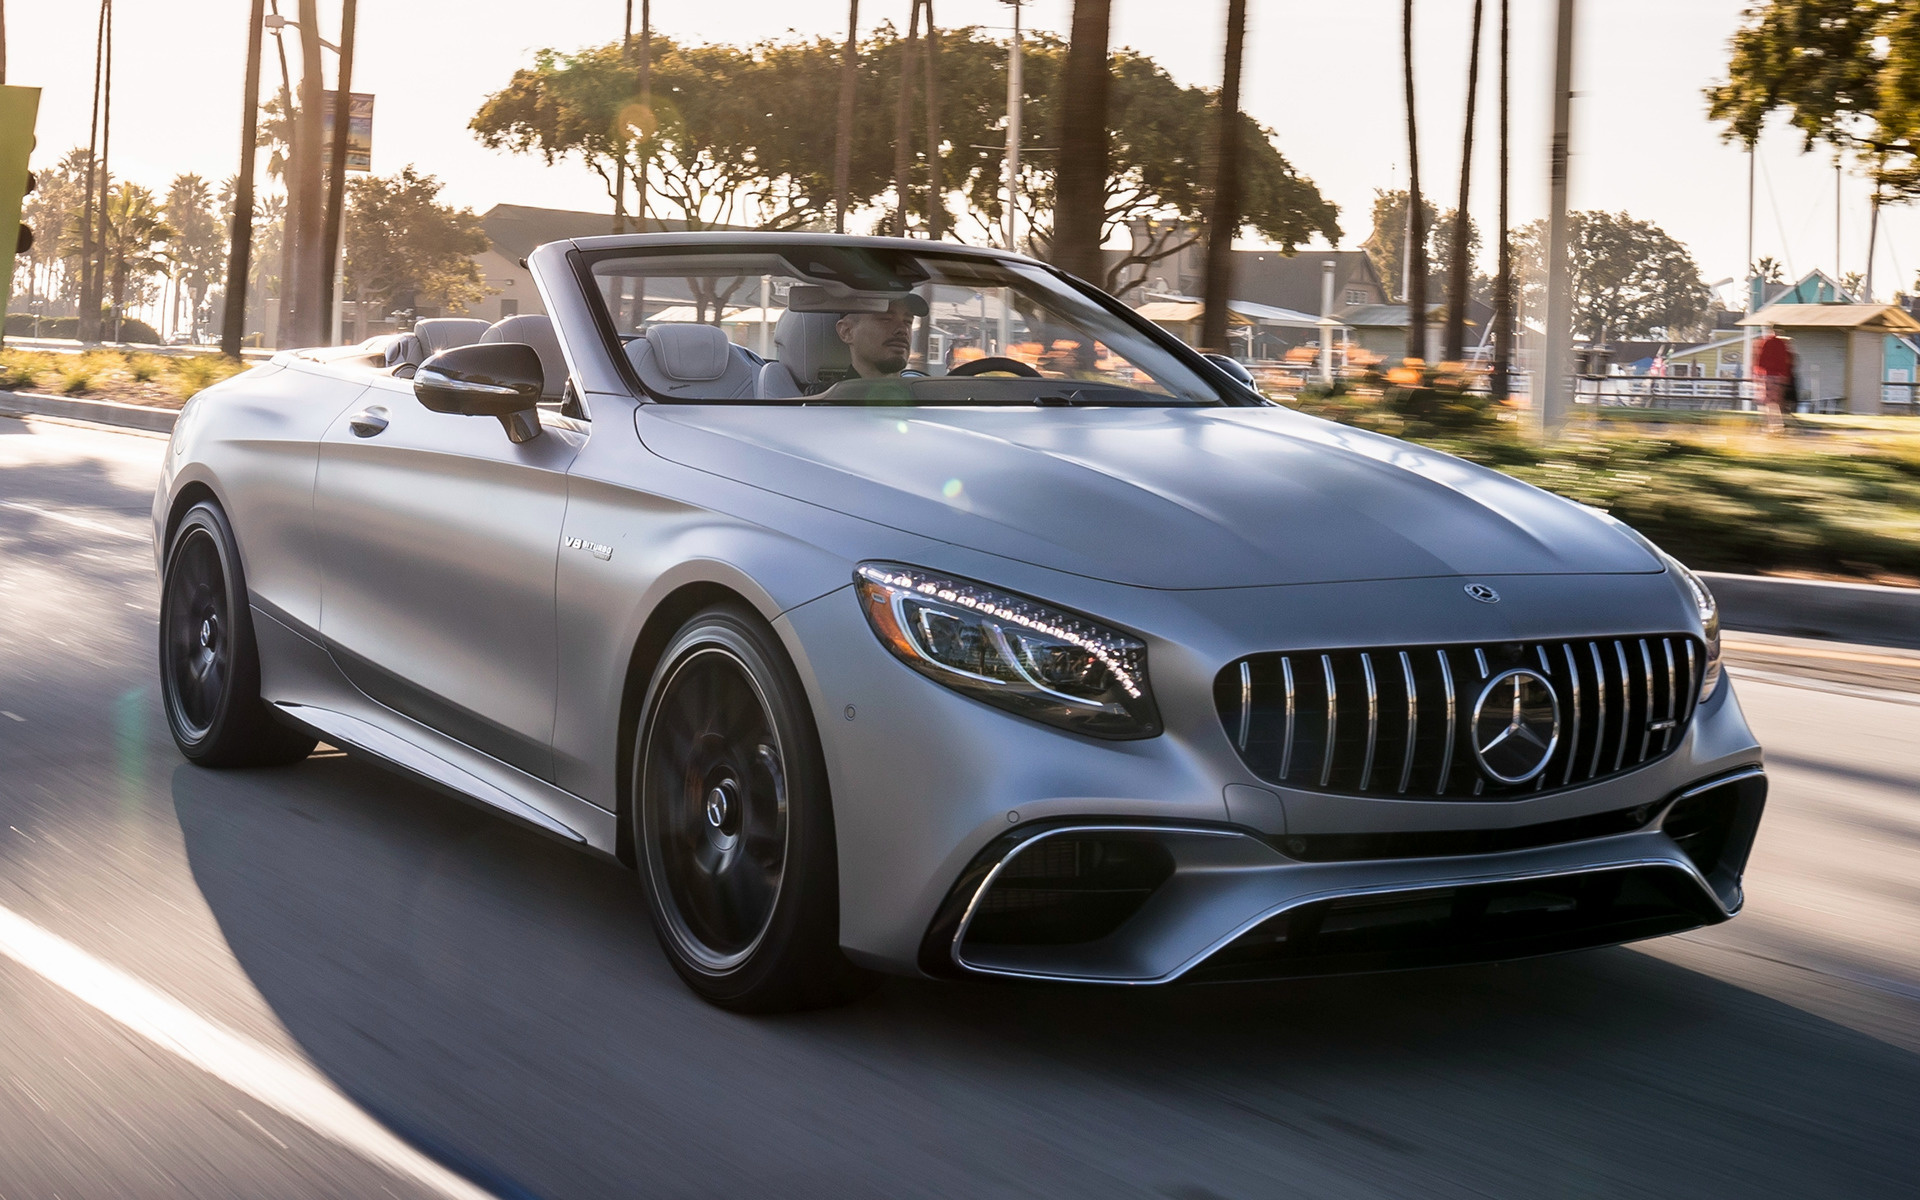 2018 Mercedes-AMG S 63 Cabriolet (US) - Wallpapers and HD ...